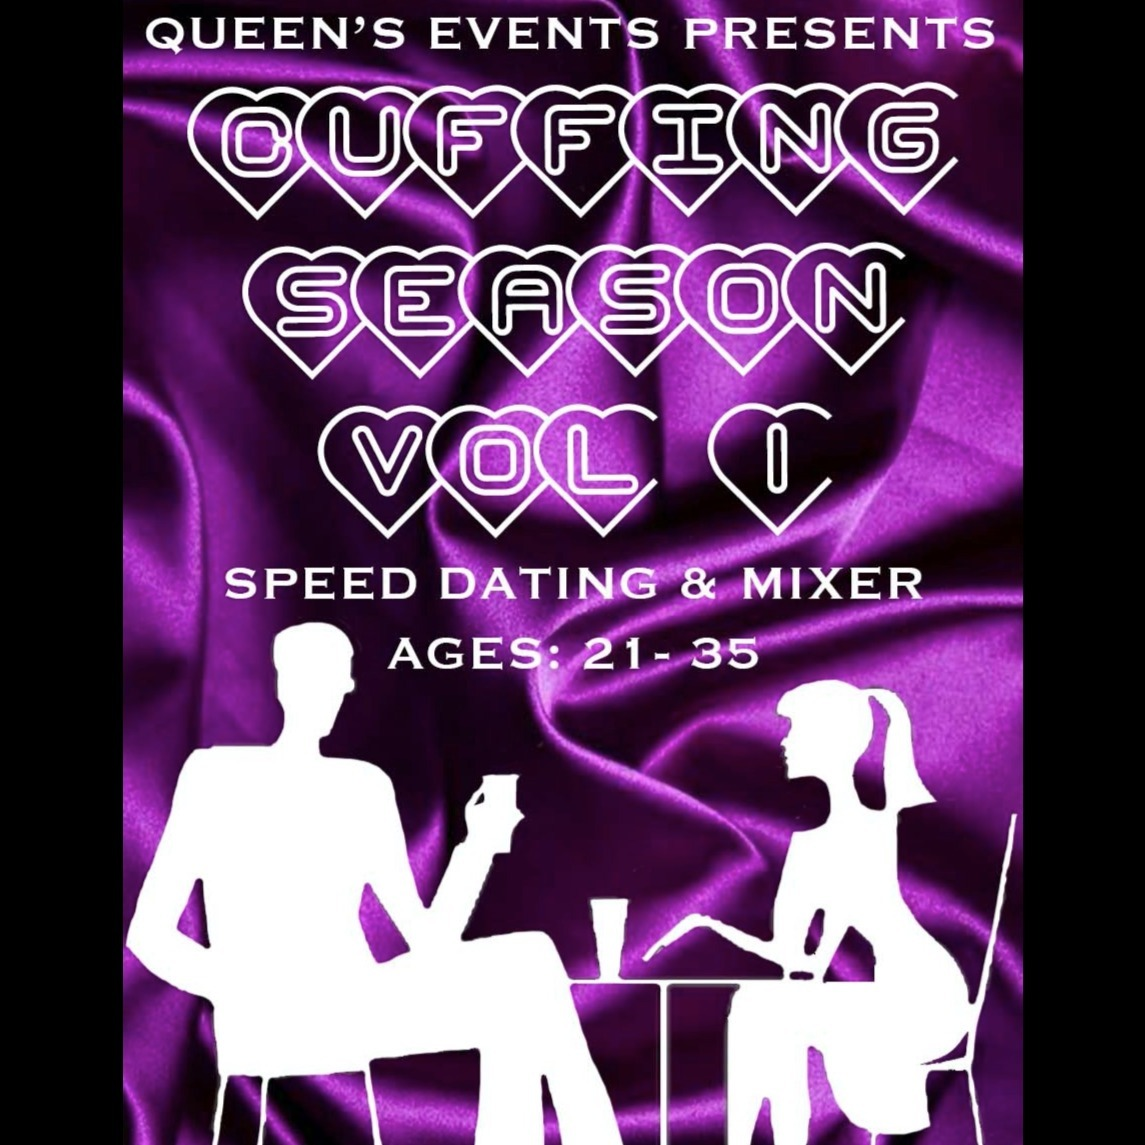 Queen's Events Presents Cuffing Season Vol 1 - Speed Dating & Mixer